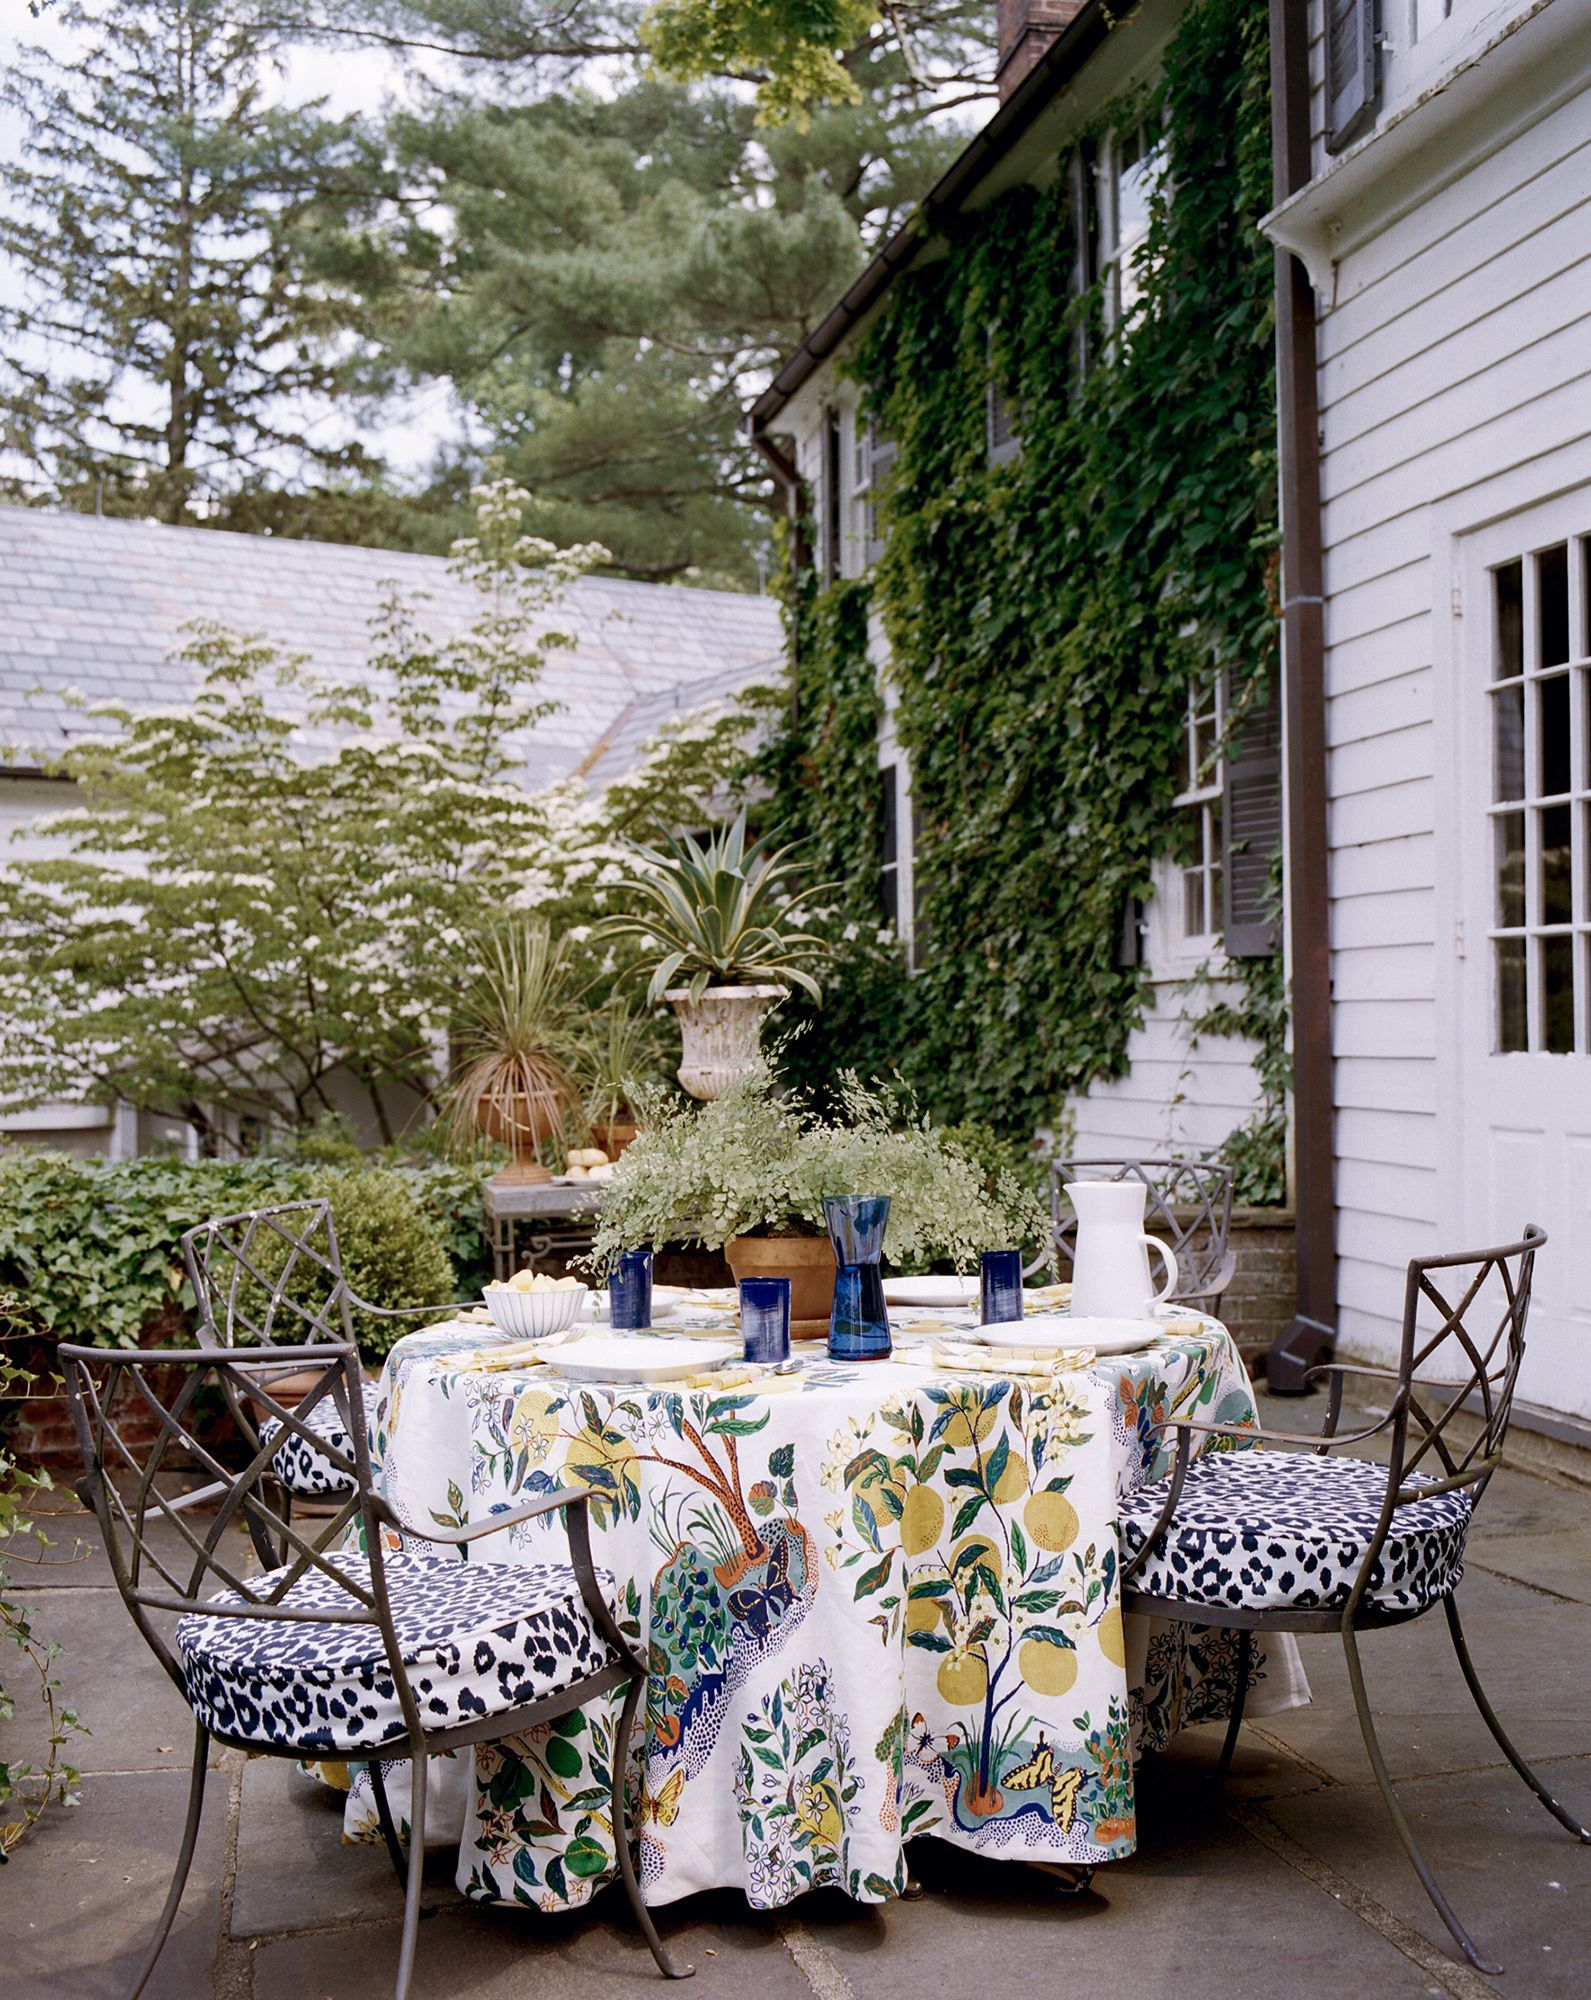 Garden Patterns Ideas 8 garden party ideas for a botanical midsummer fête | gardens